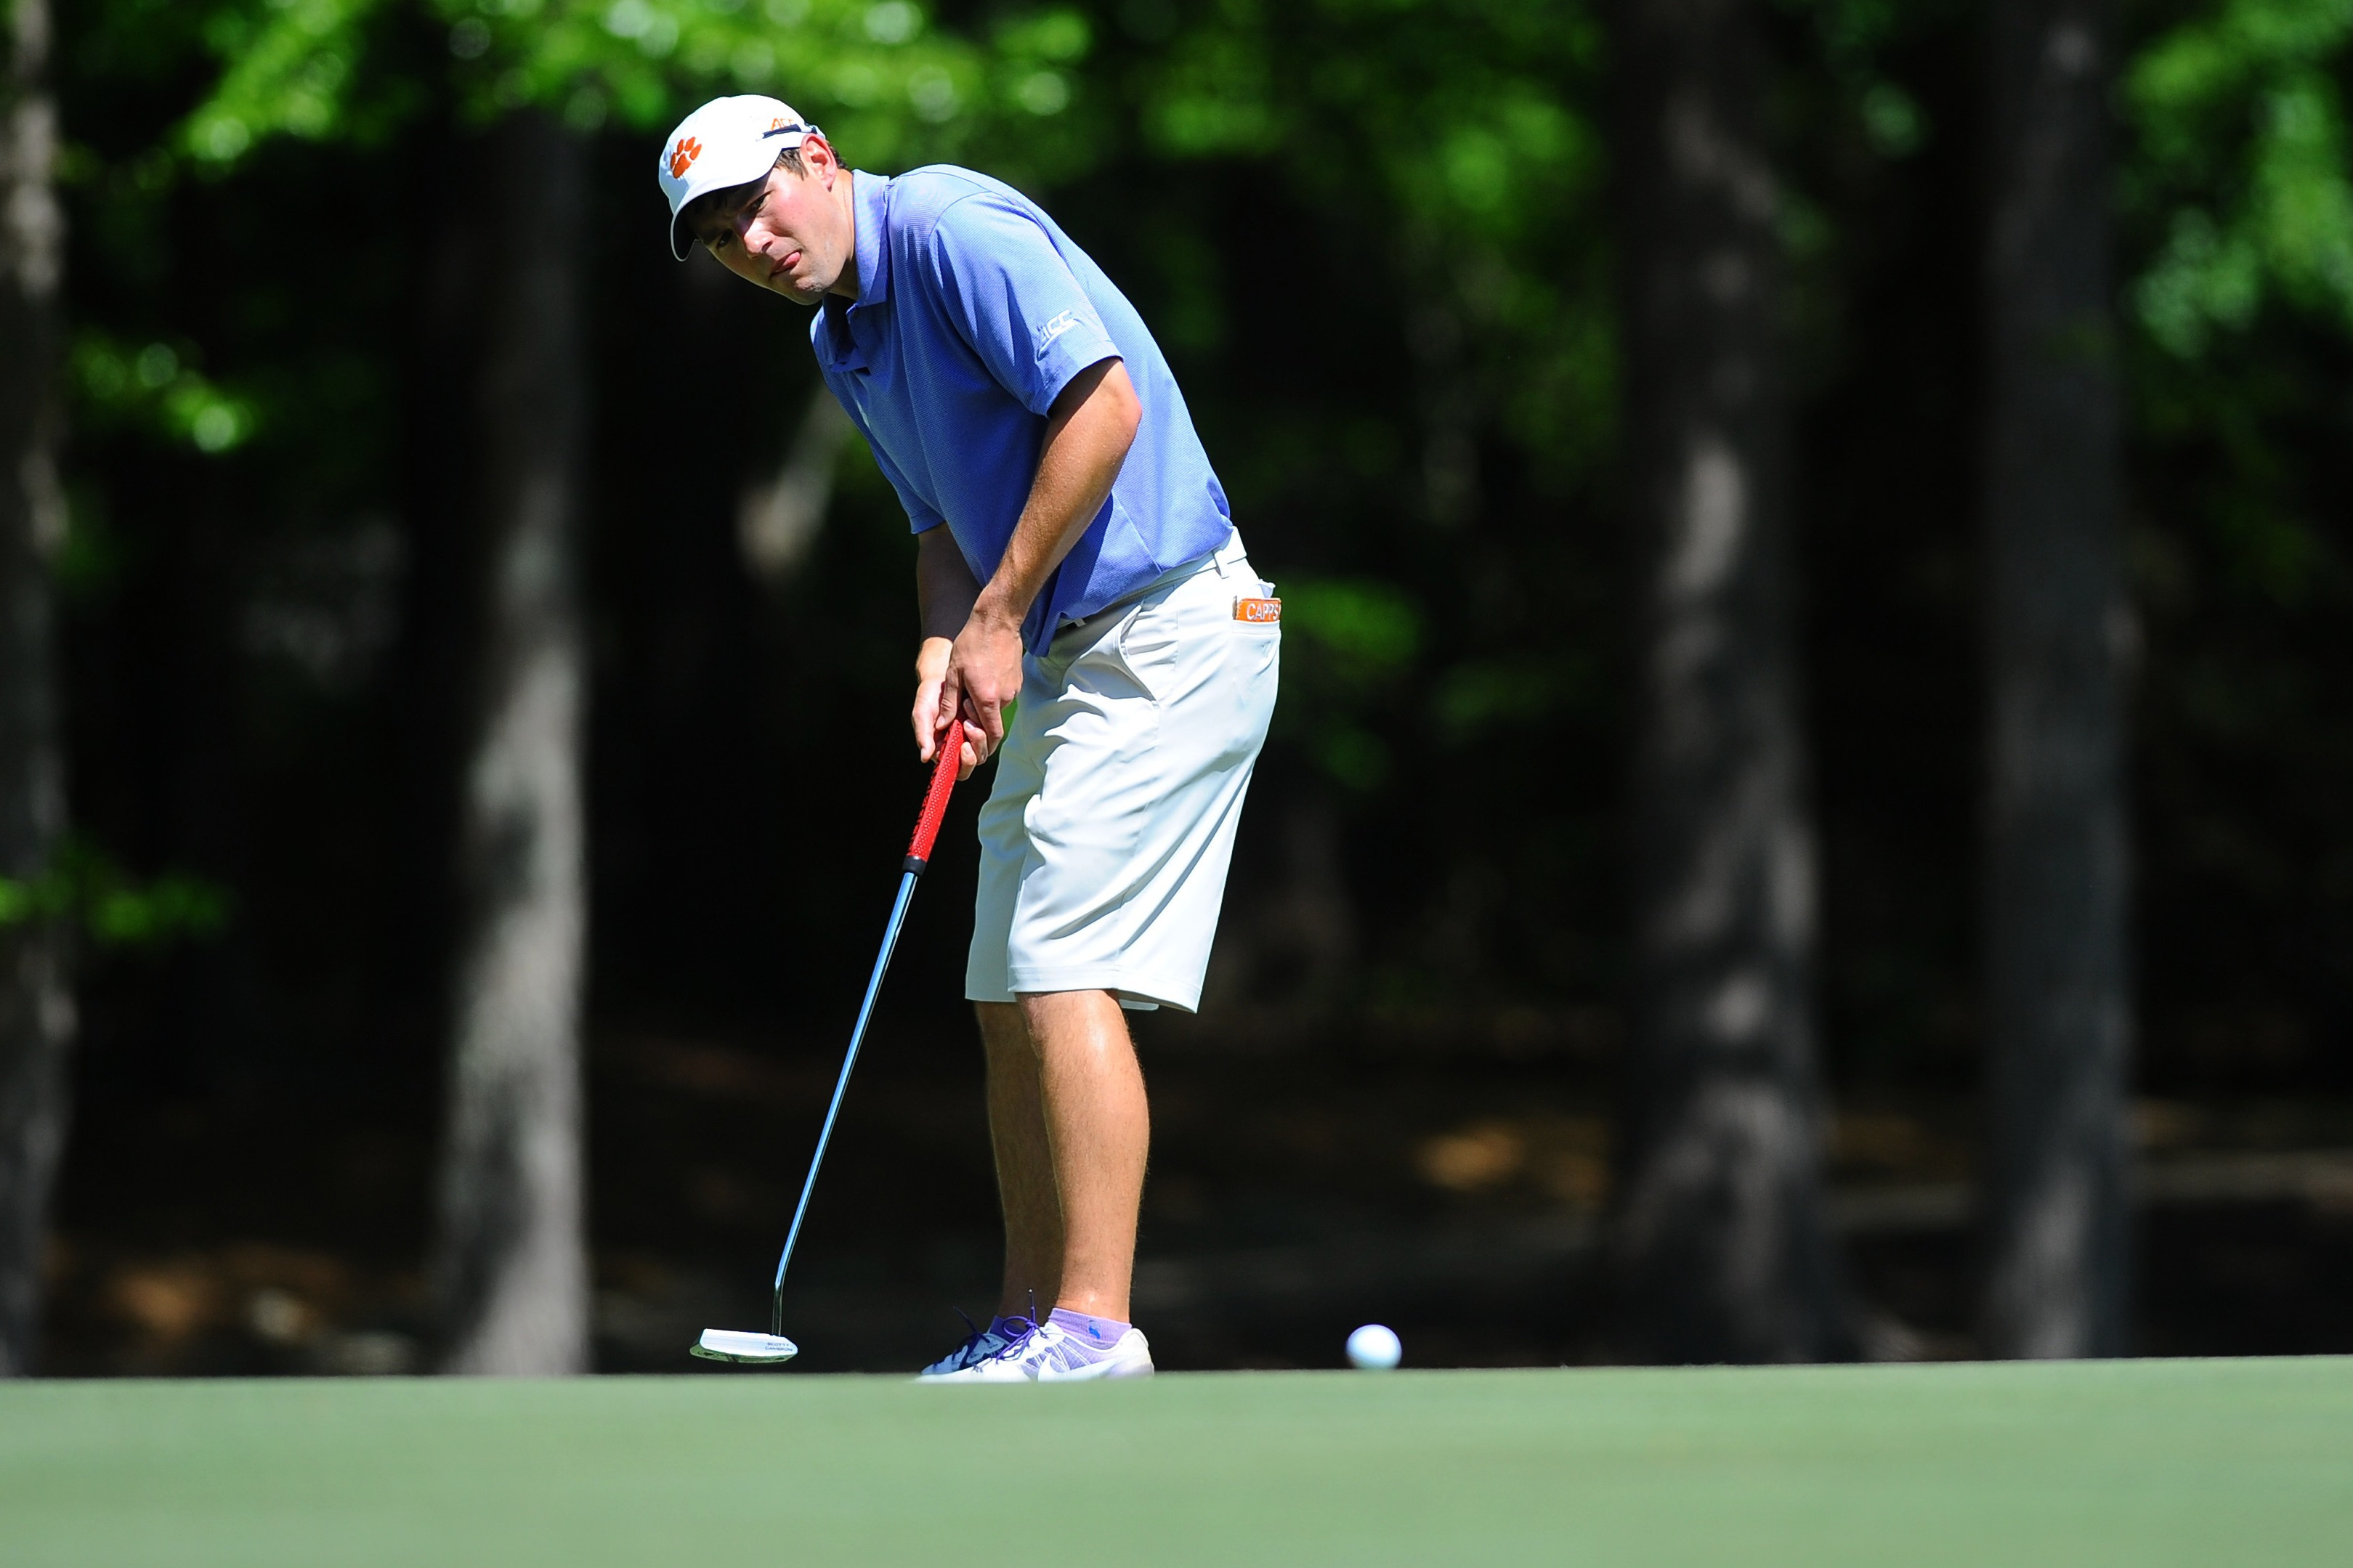 Behr Tied for 15th after Two Rounds at NCAA Golf